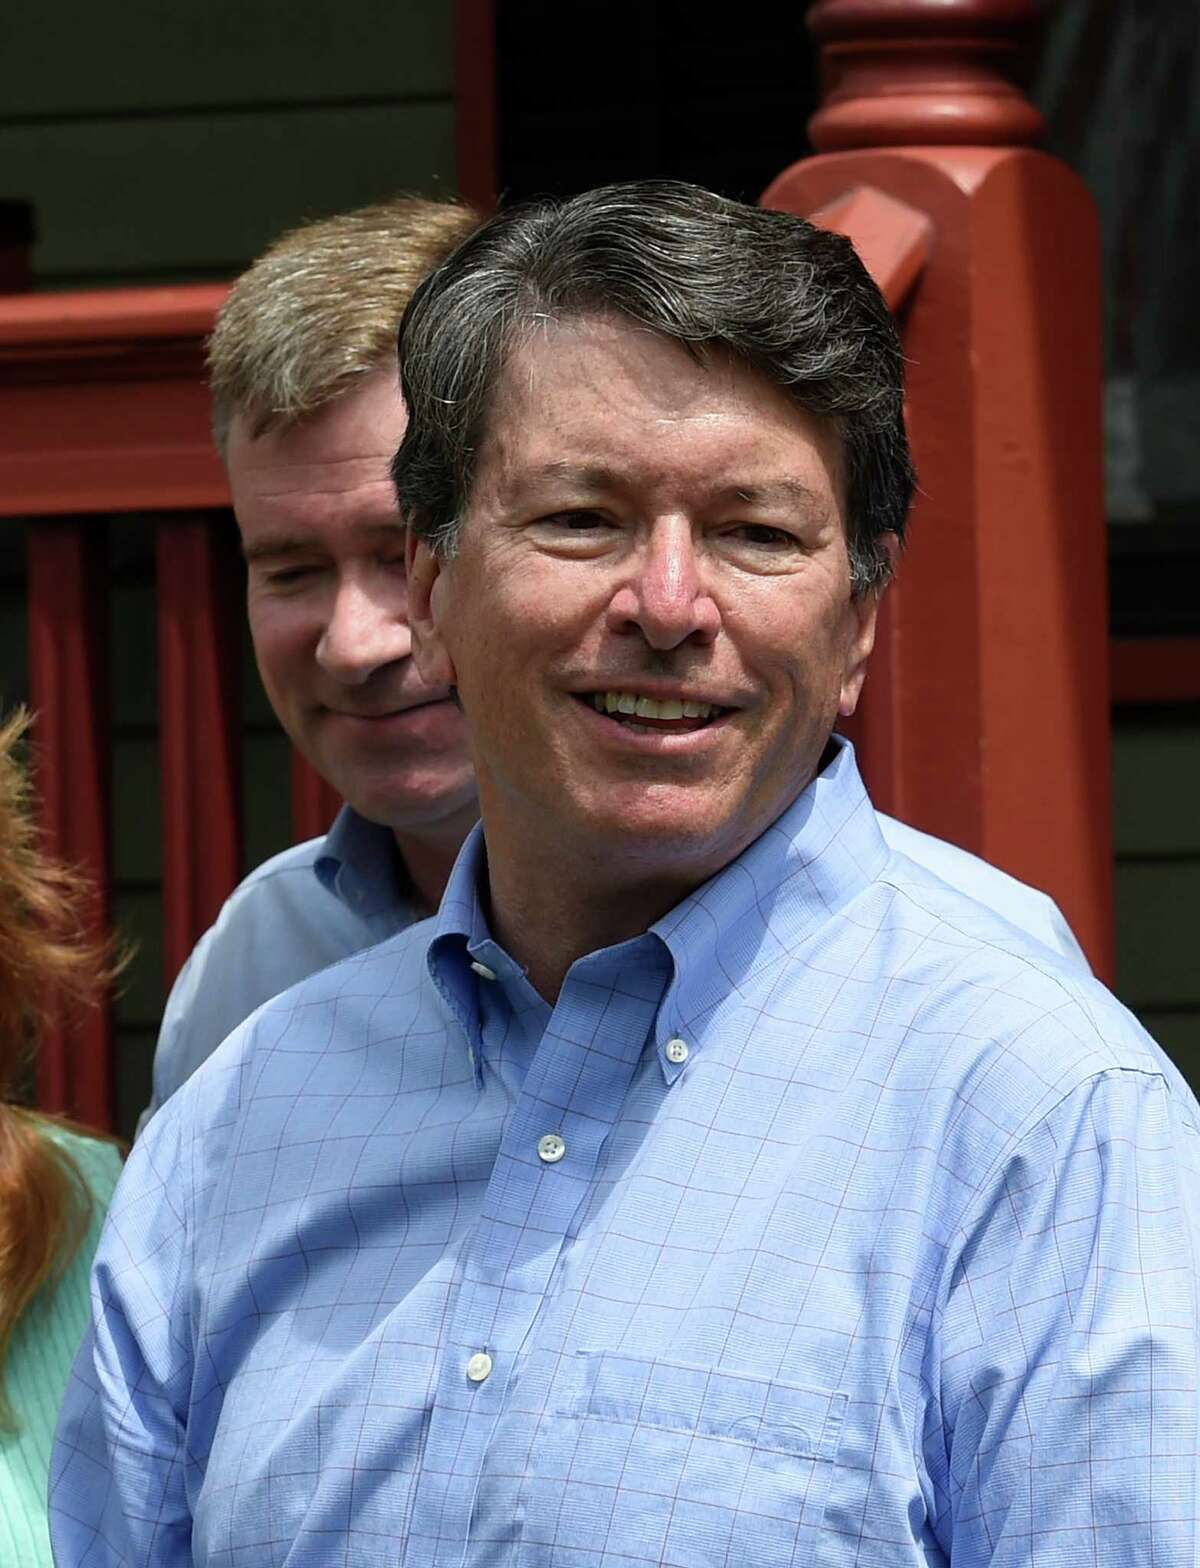 John Faso accepts the endorsement of U.S. Rep. Chris Gibson for his seat in Congress on Monday, July 18, 2016, outside Gibson's home in Kinderhook, N.Y. (Skip Dickstein/Times Union)